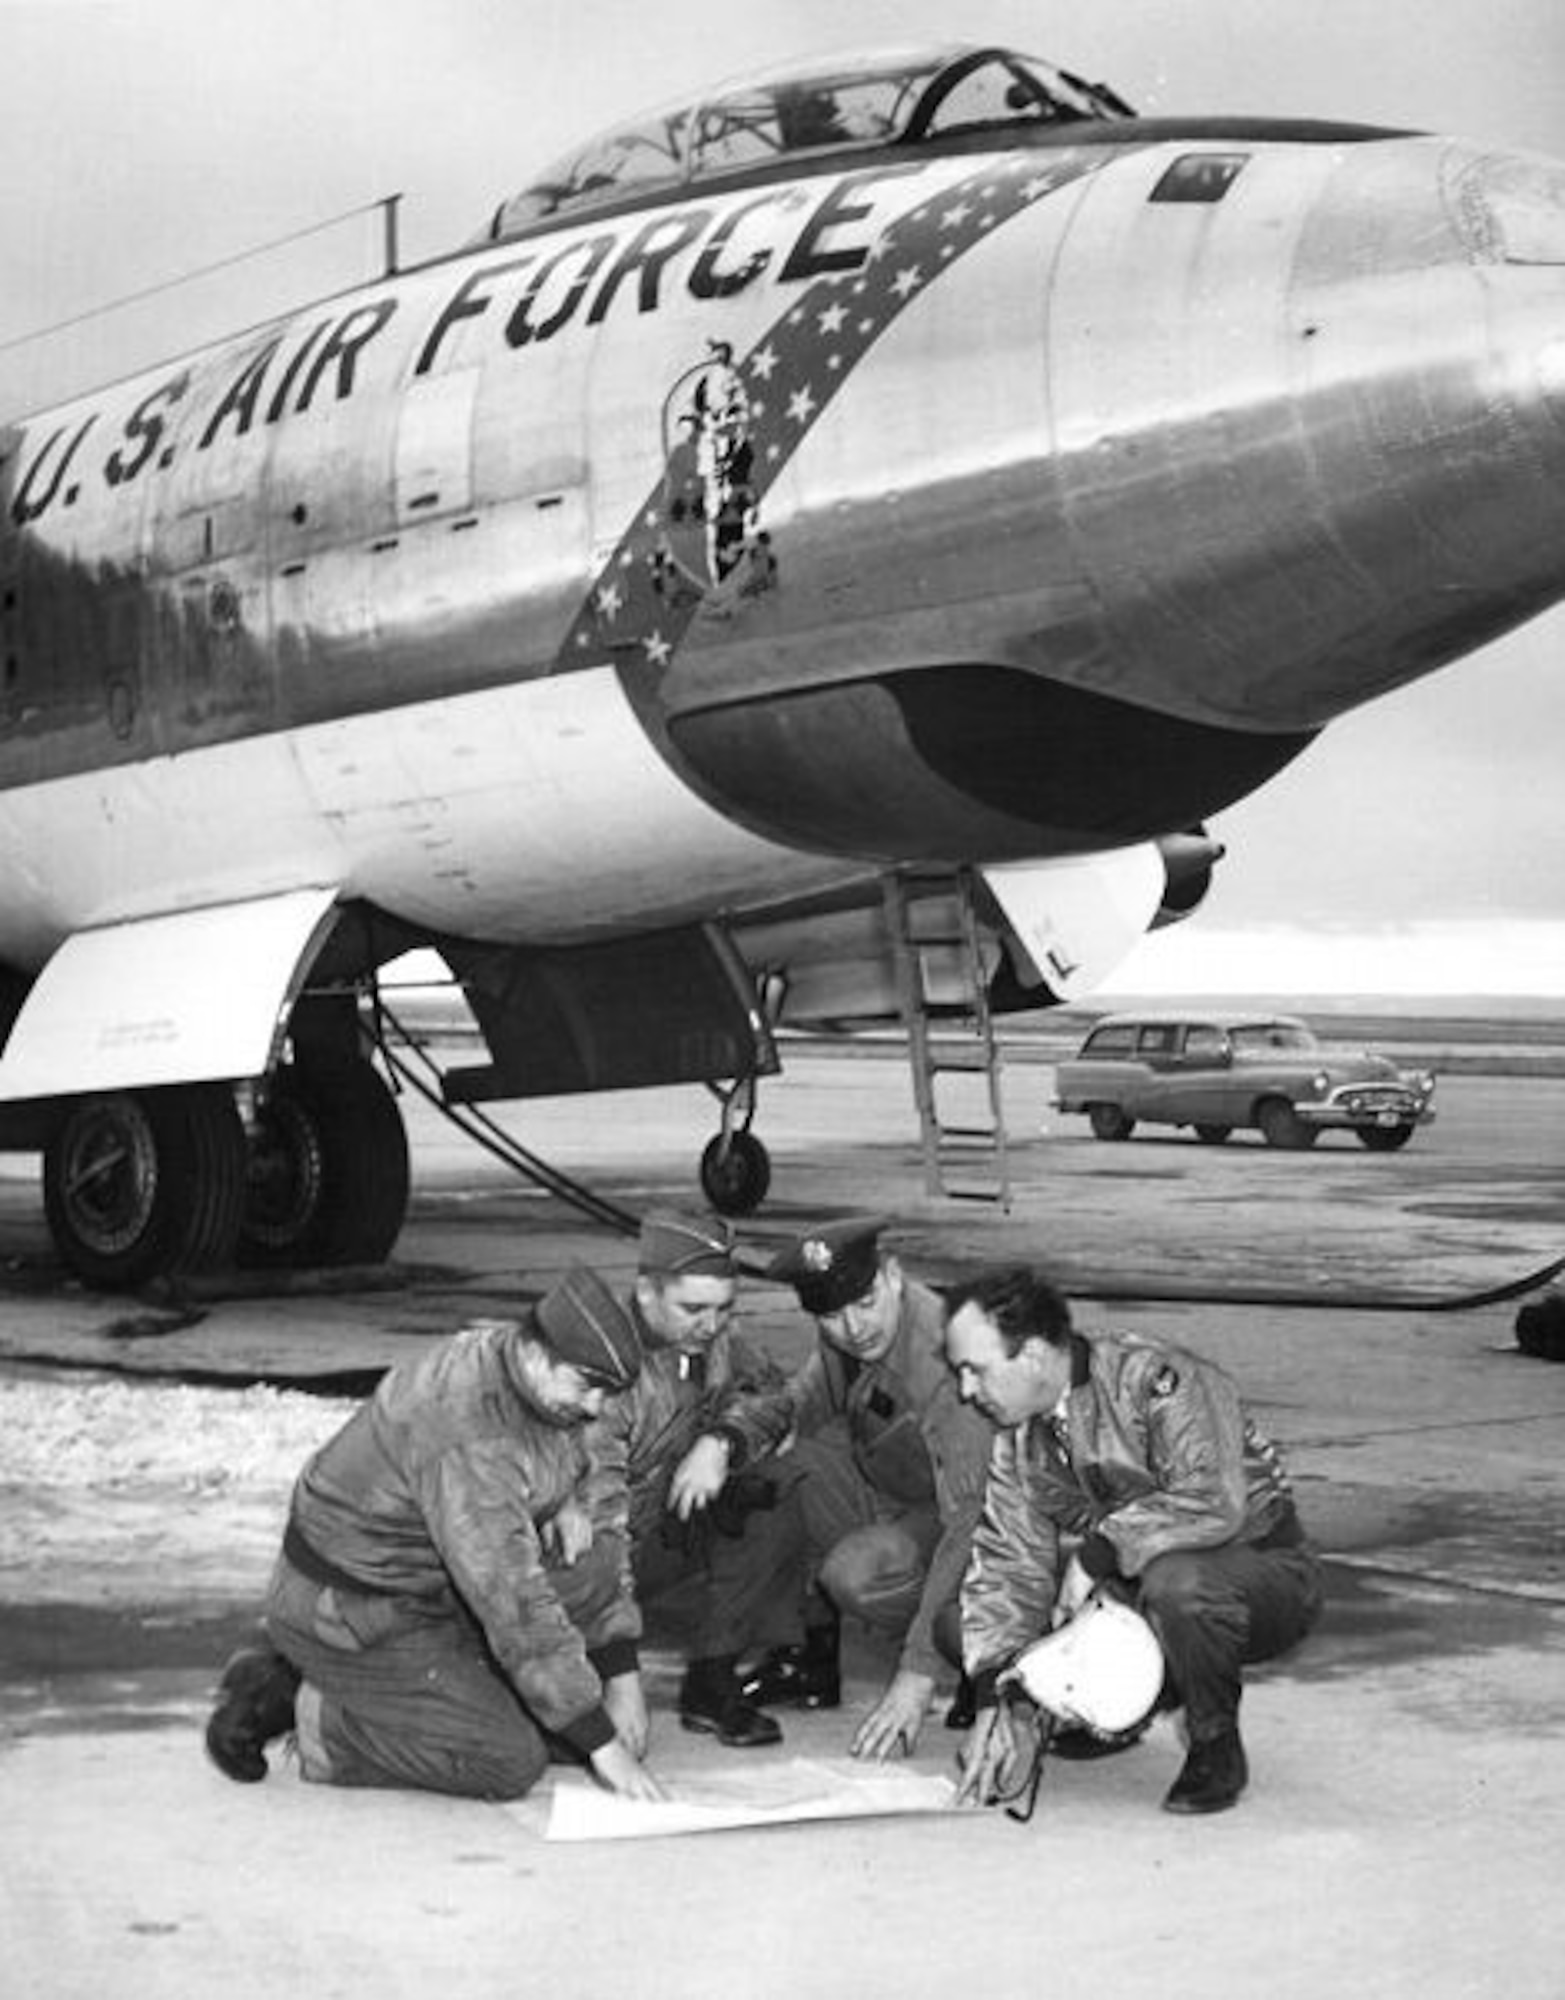 Crew members in front of a B-47E Stratojet of the 1st Bombardment Squadron, 9th Bombardment Wing at Mountain Home Air Force Base, Idaho, 1956. (U.S. Air Force Courtesy Photo)